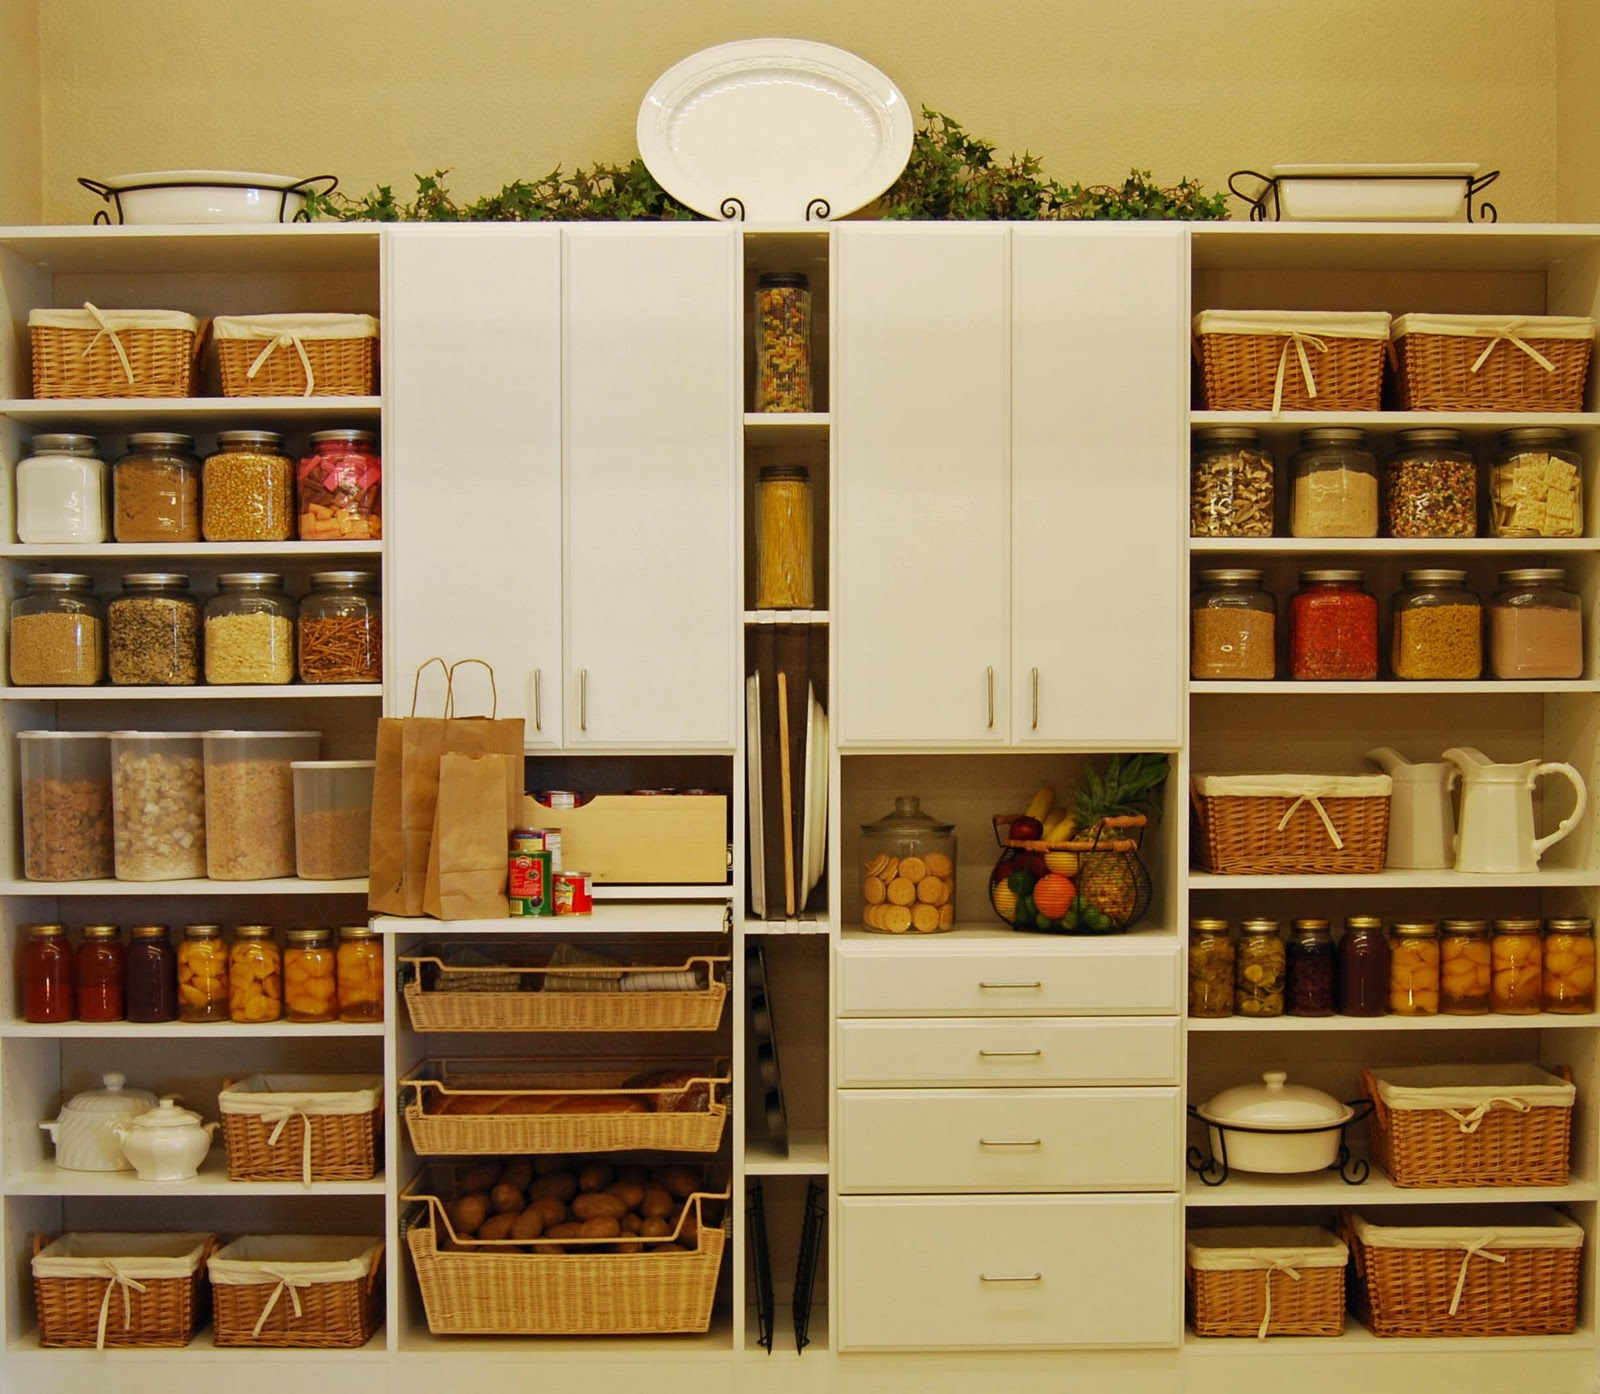 kitchen and pantry open hours photo - 6